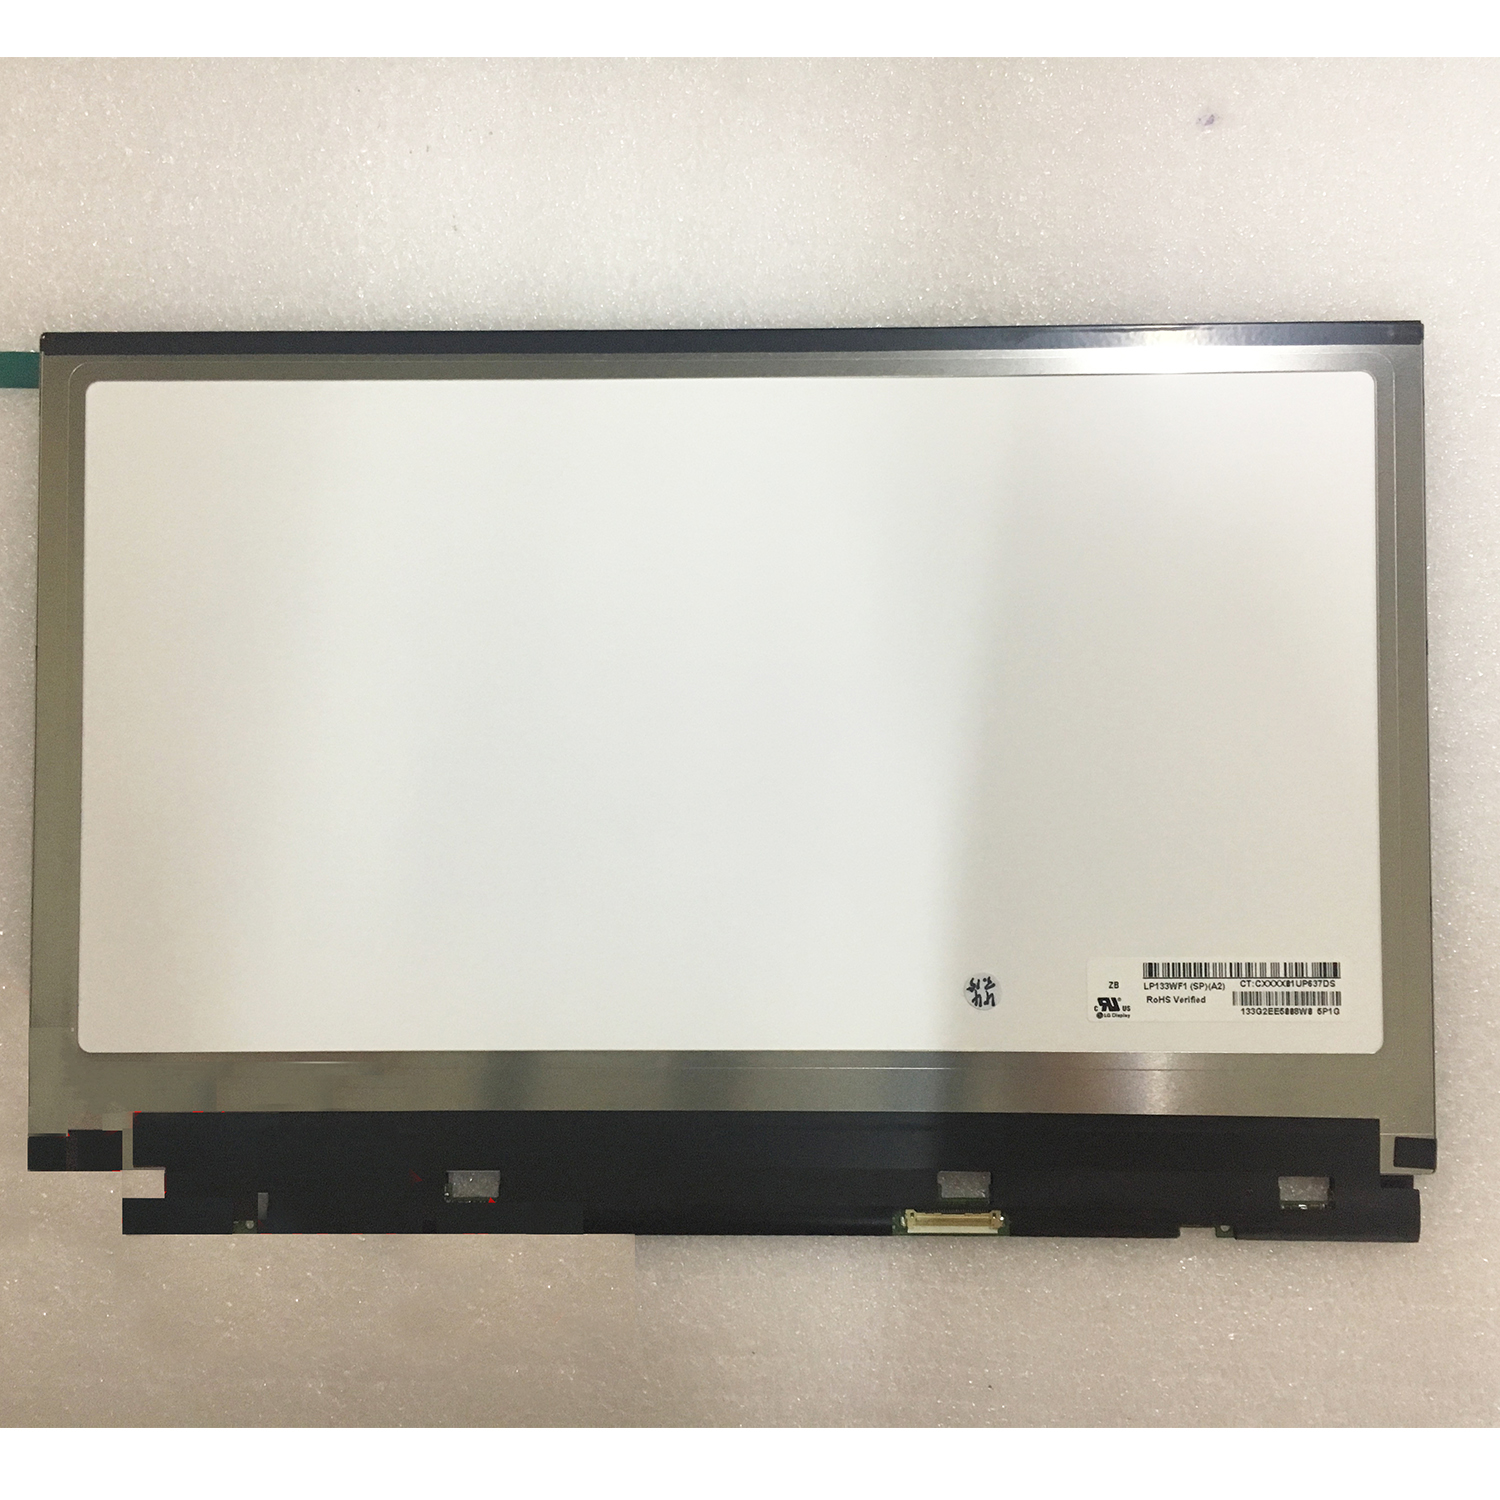 """For LG 13.3"""" LP133WF1 (SP)(A2) LP133WF1 SPA2 LED Display LCD Screen FHD 1920X1080 30 Pins Glossy Panel LP133WF1 SPA2 Replacement